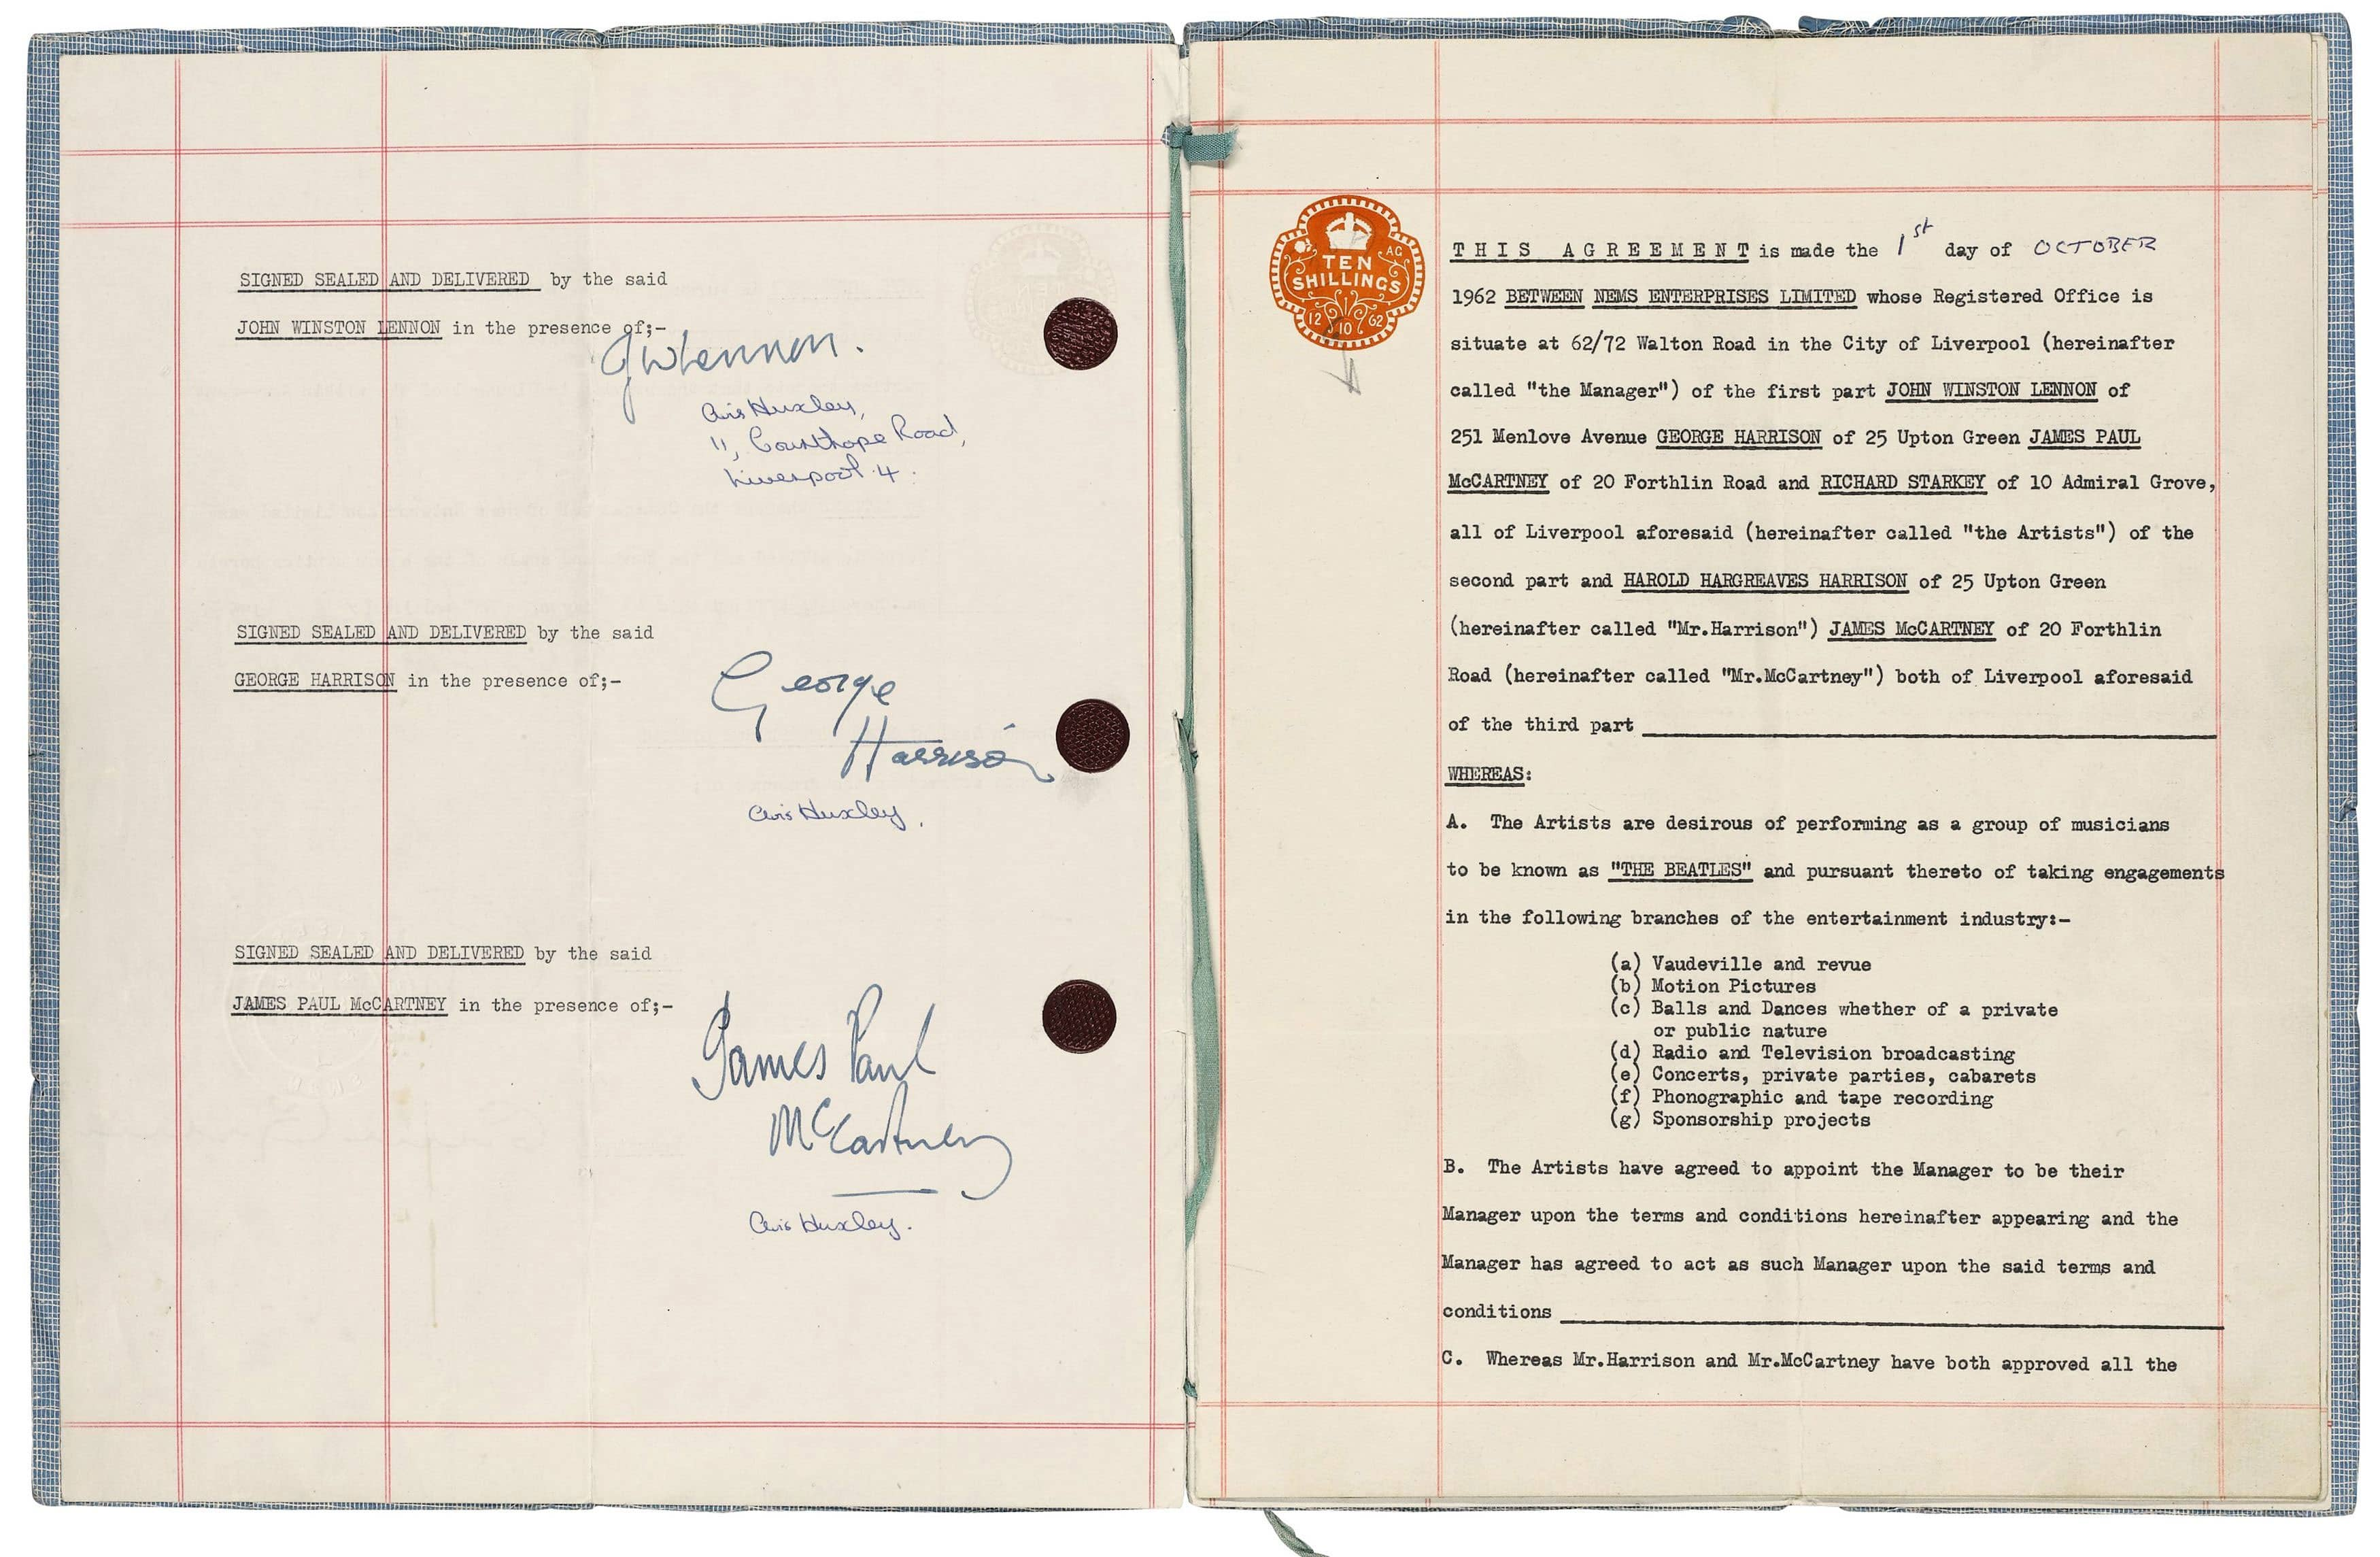 Contract signed by The Beatles and Brian Epstein, 1 October 1962